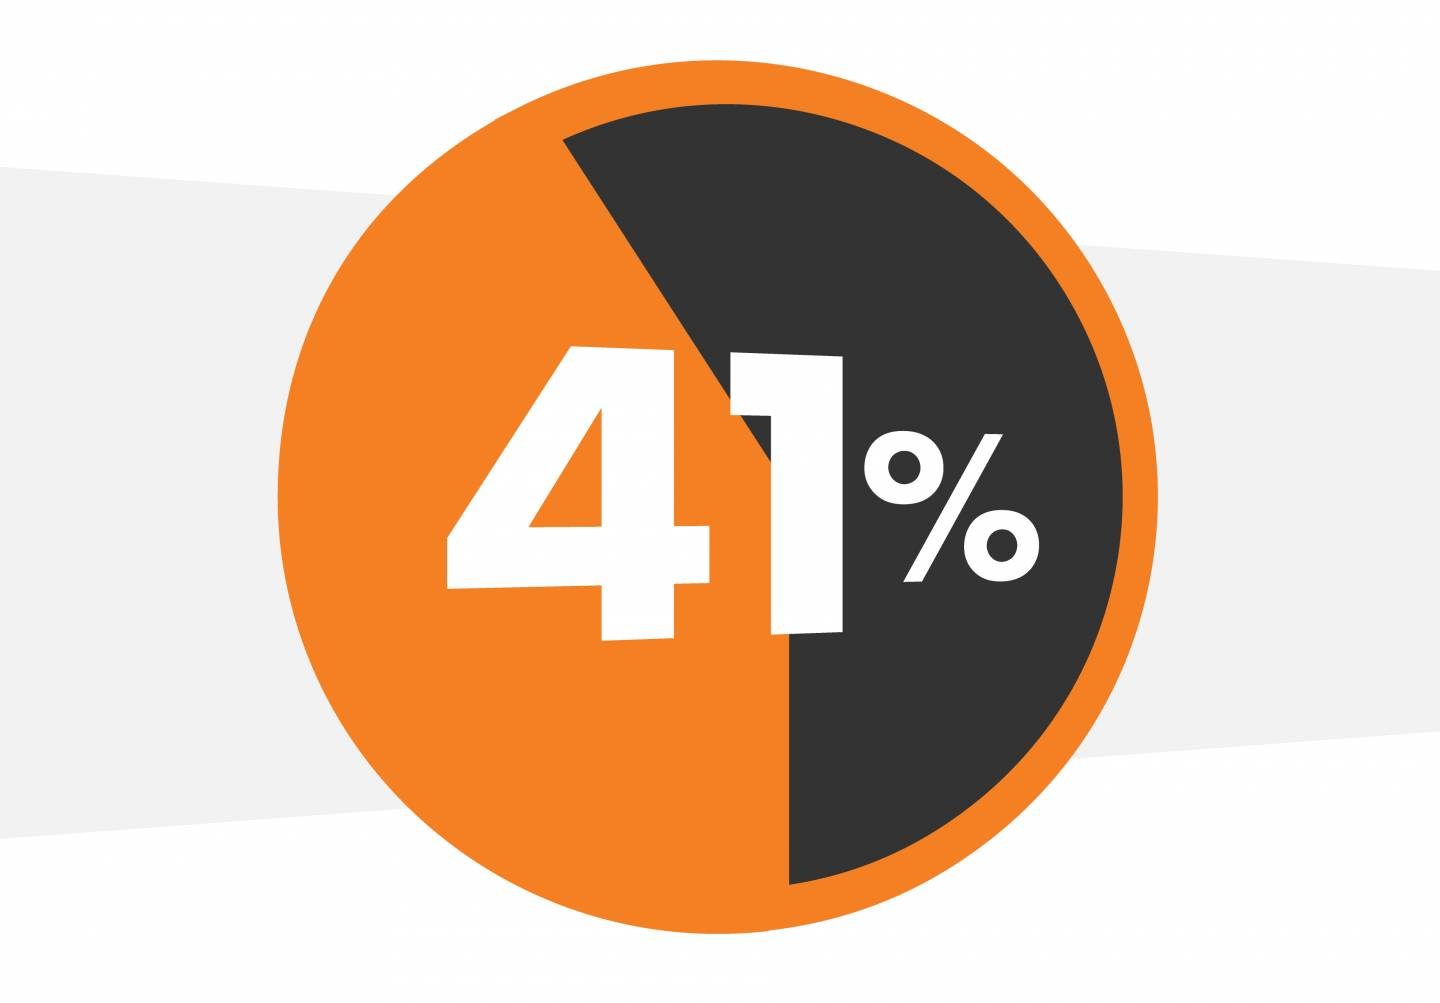 pie chart in orange and black labeled 41%